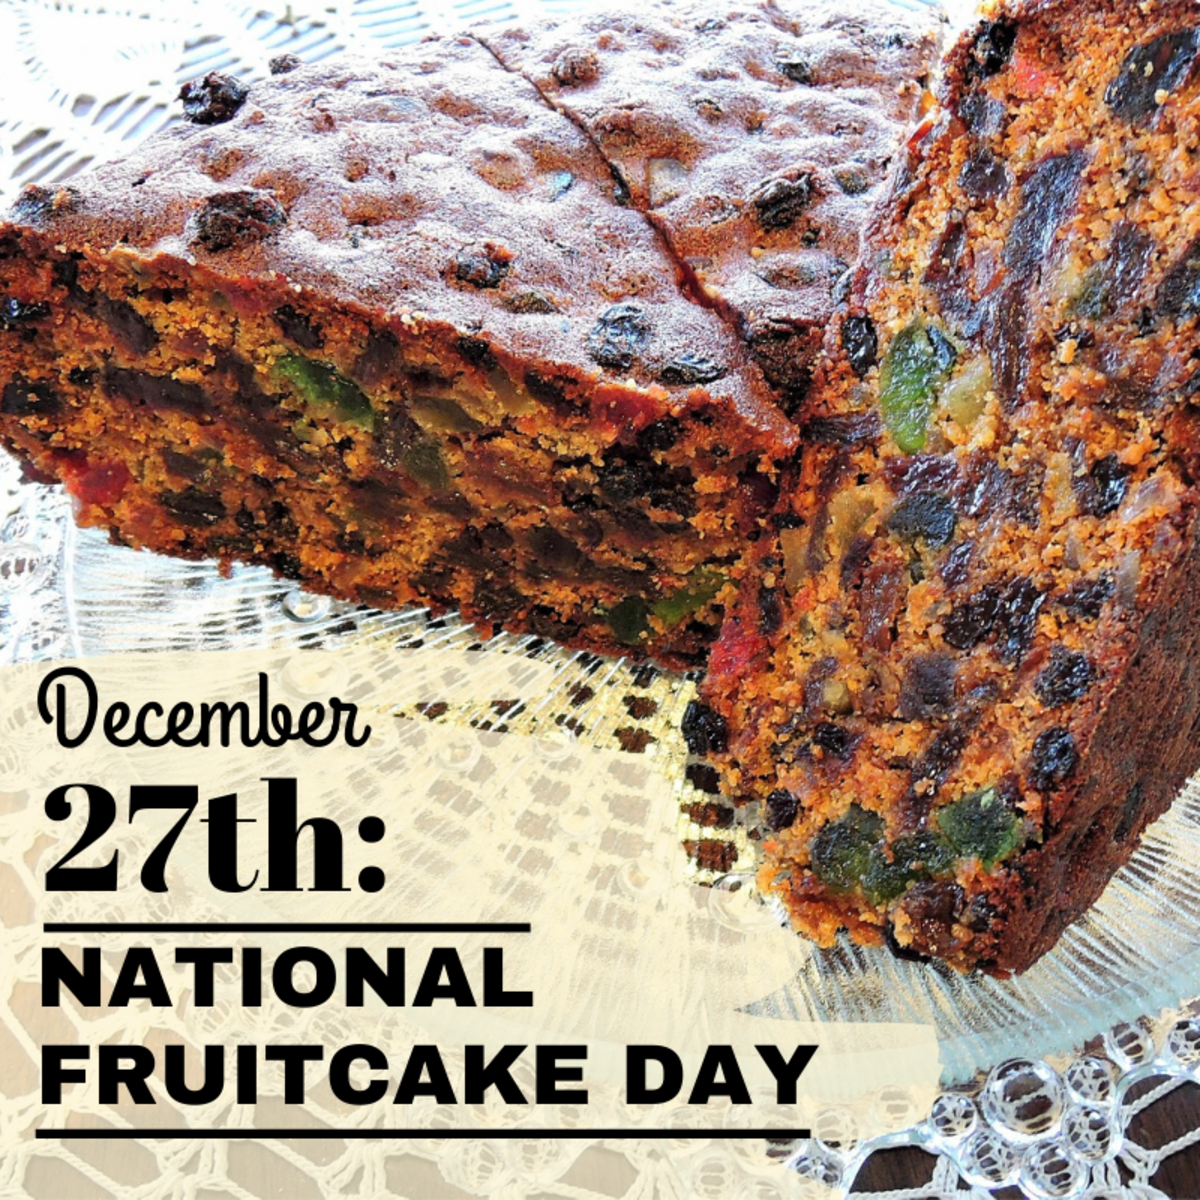 December 27th Is National Fruitcake Day